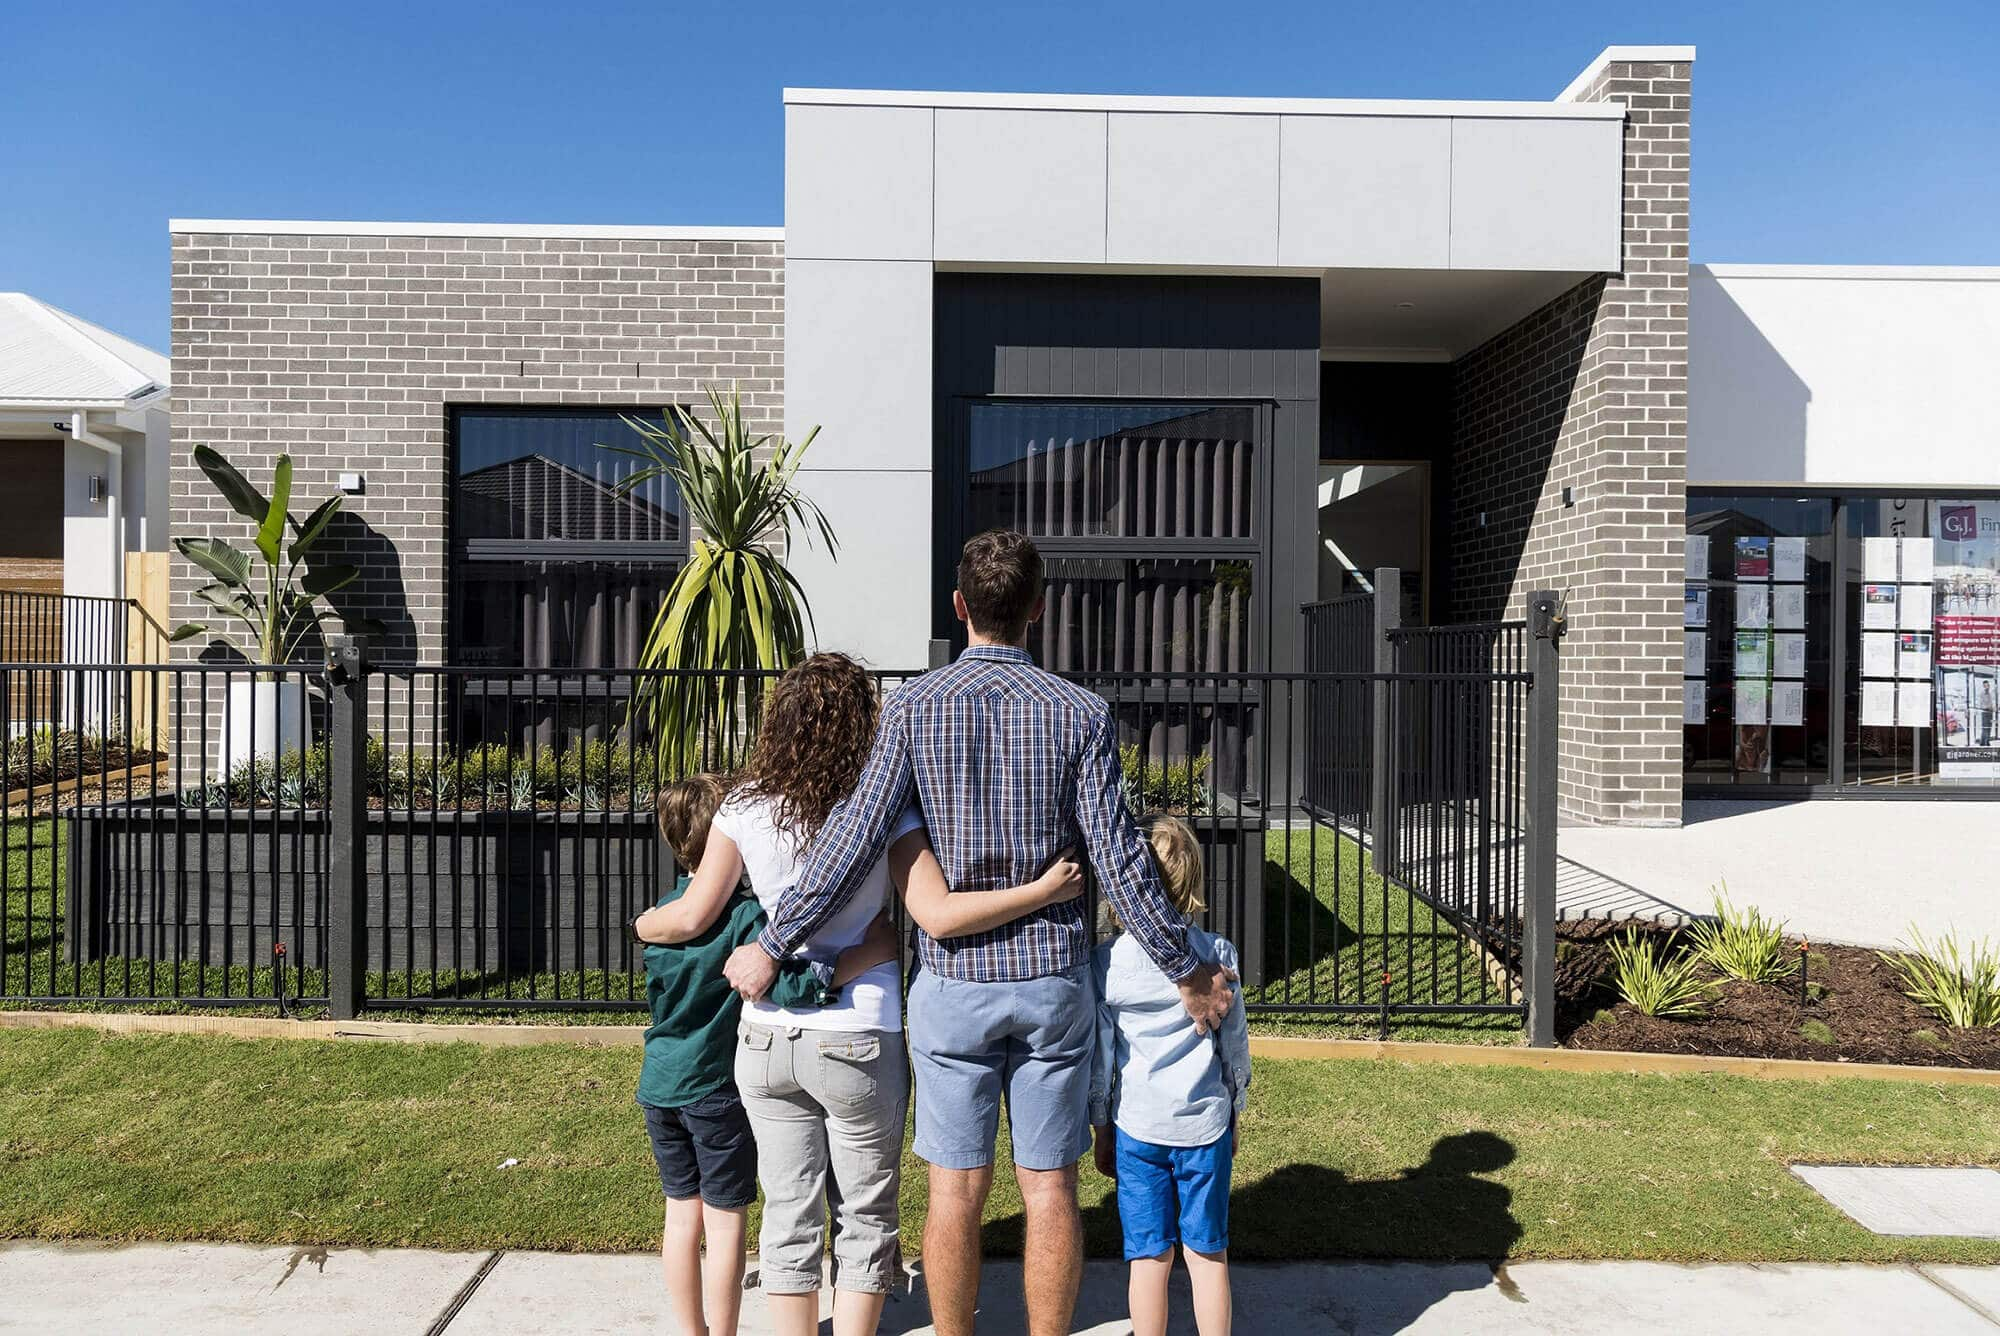 Queensland's Best Residential Subdivision